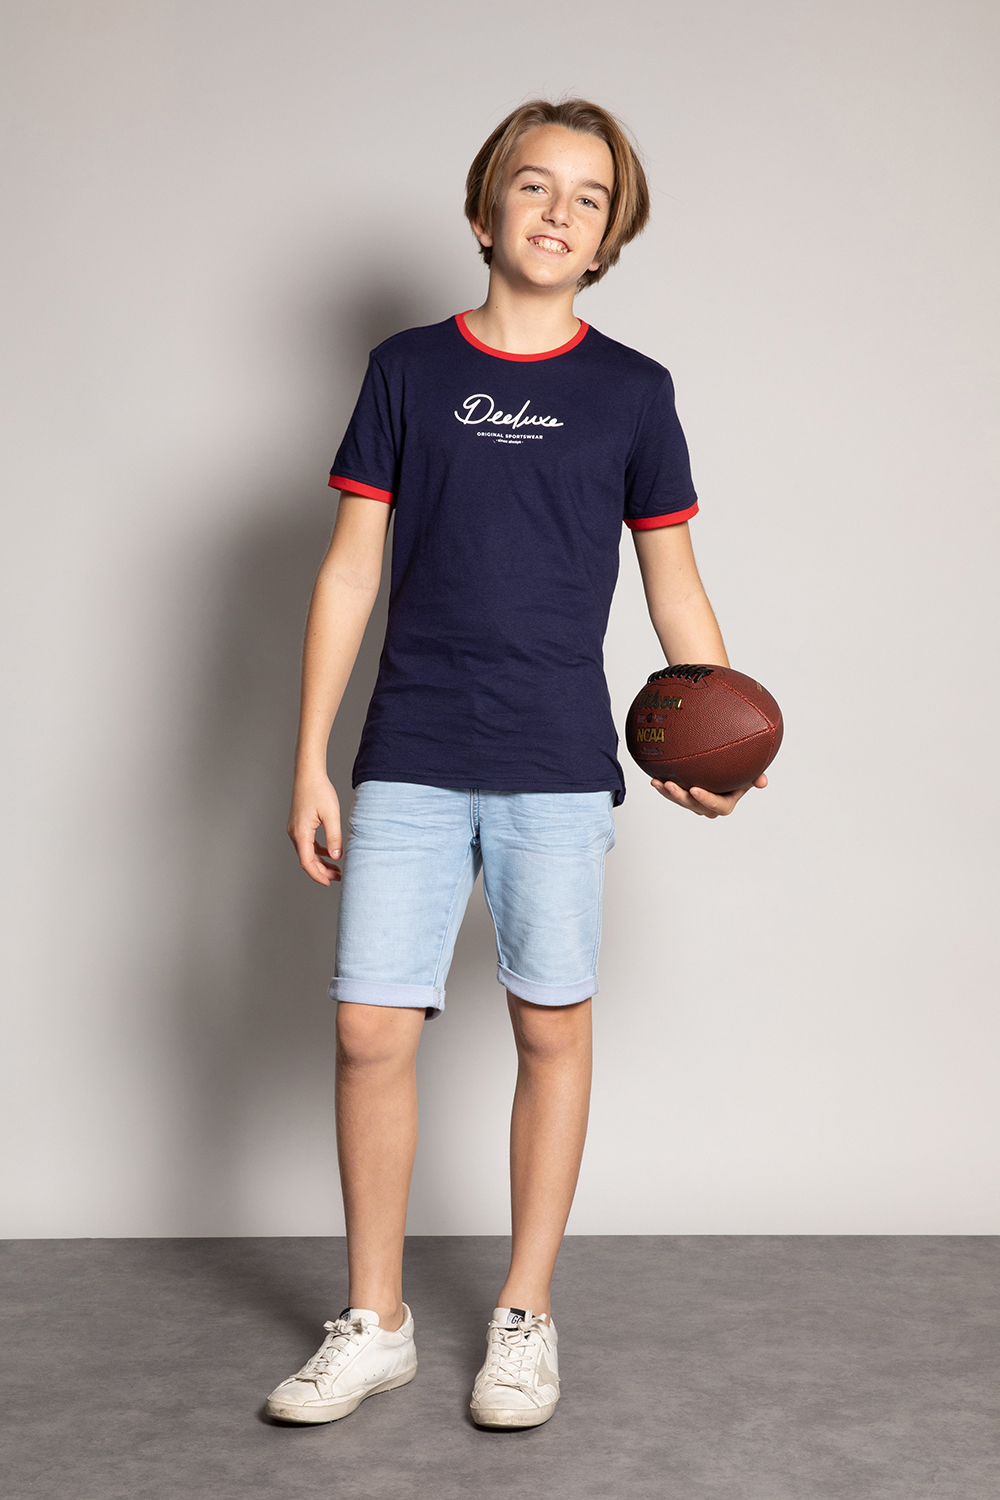 T-Shirt HYLTER - Couleur - Navy, Taille - 8